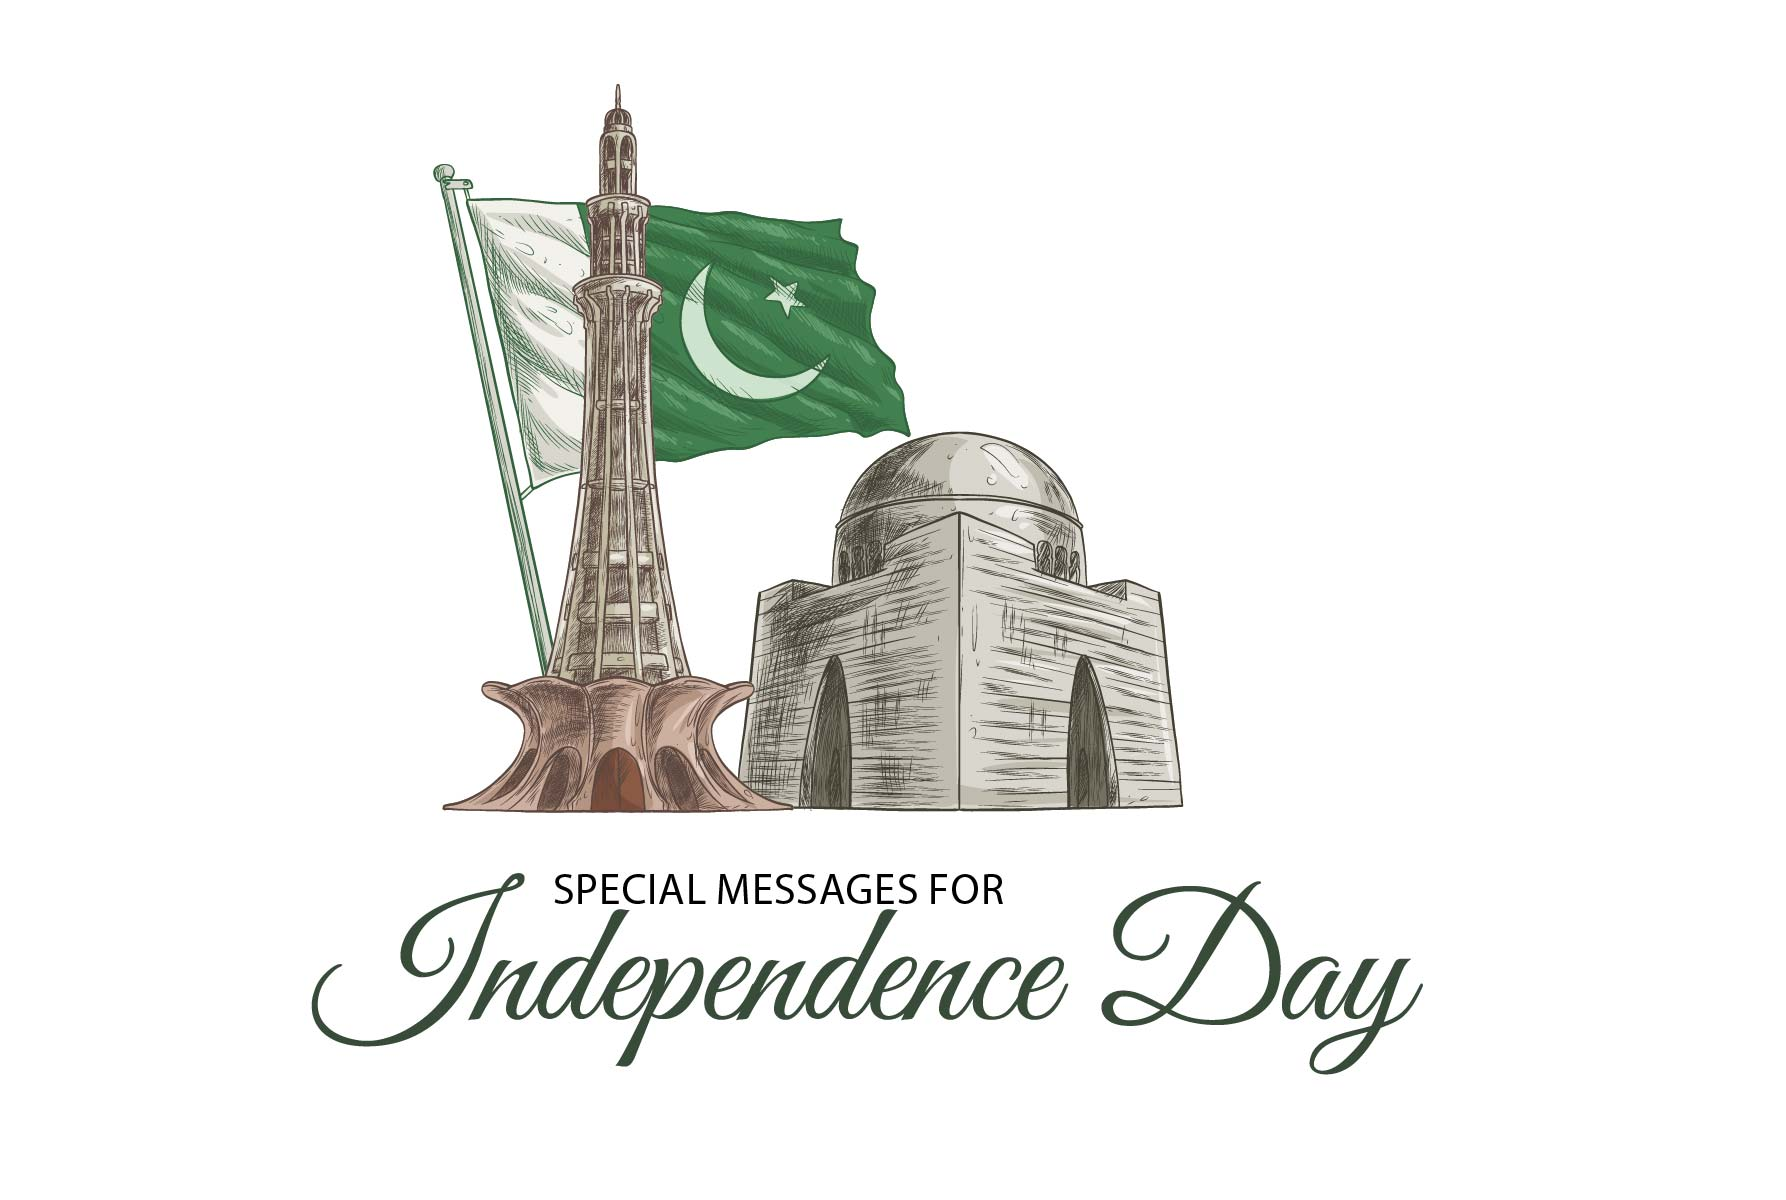 14th Aug. Independence day messages